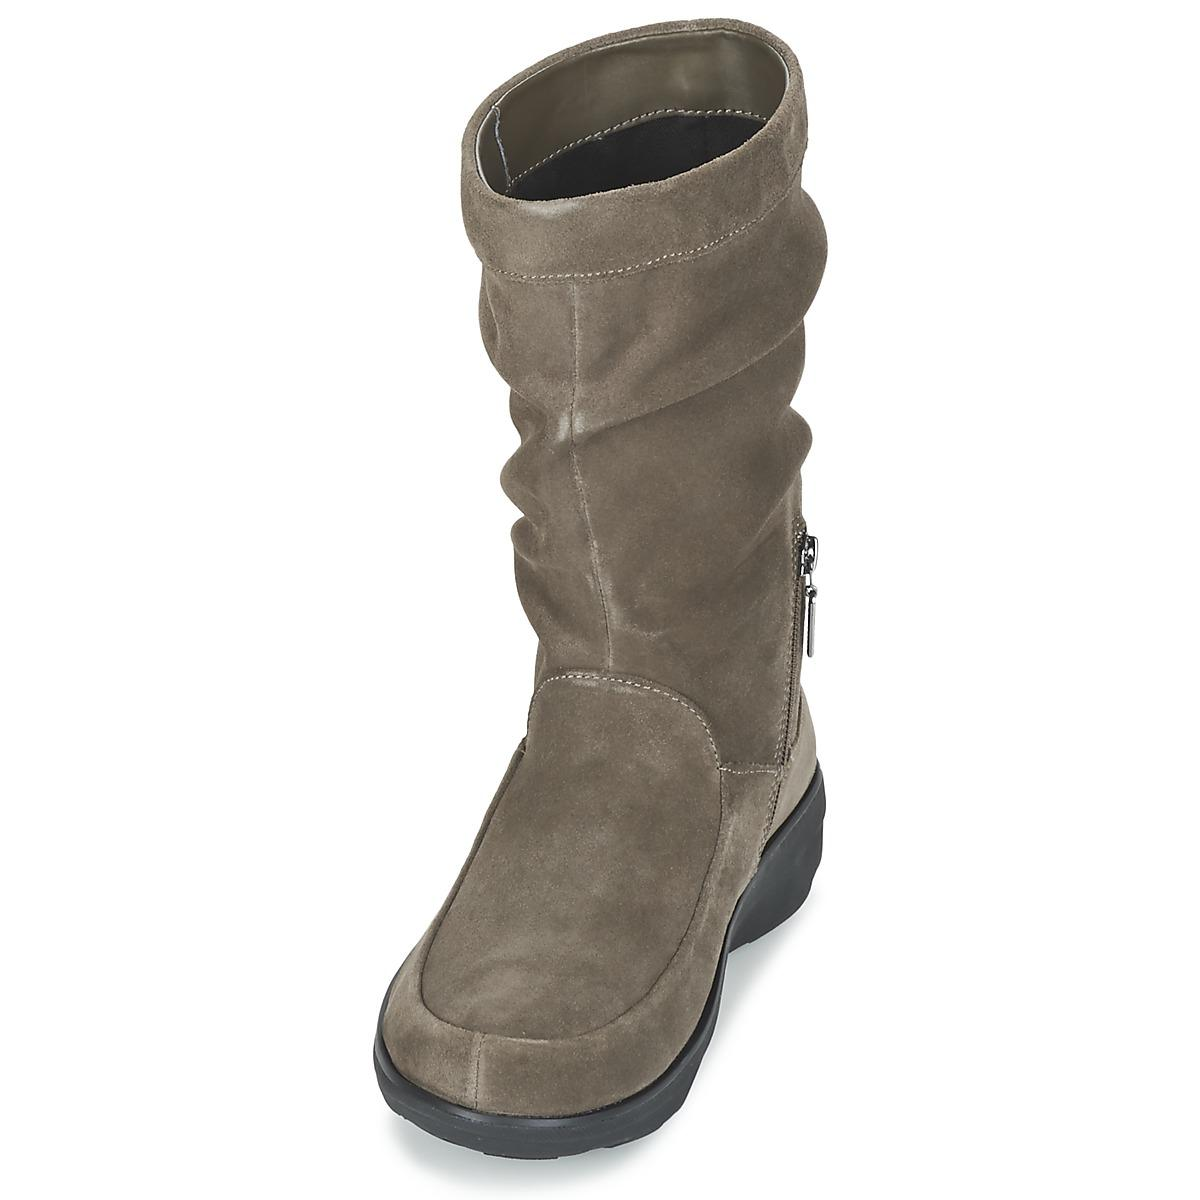 Fitflop Loaf Slouchy Knee Boot Suede Women's Mid Boots In Brown - Save 1%